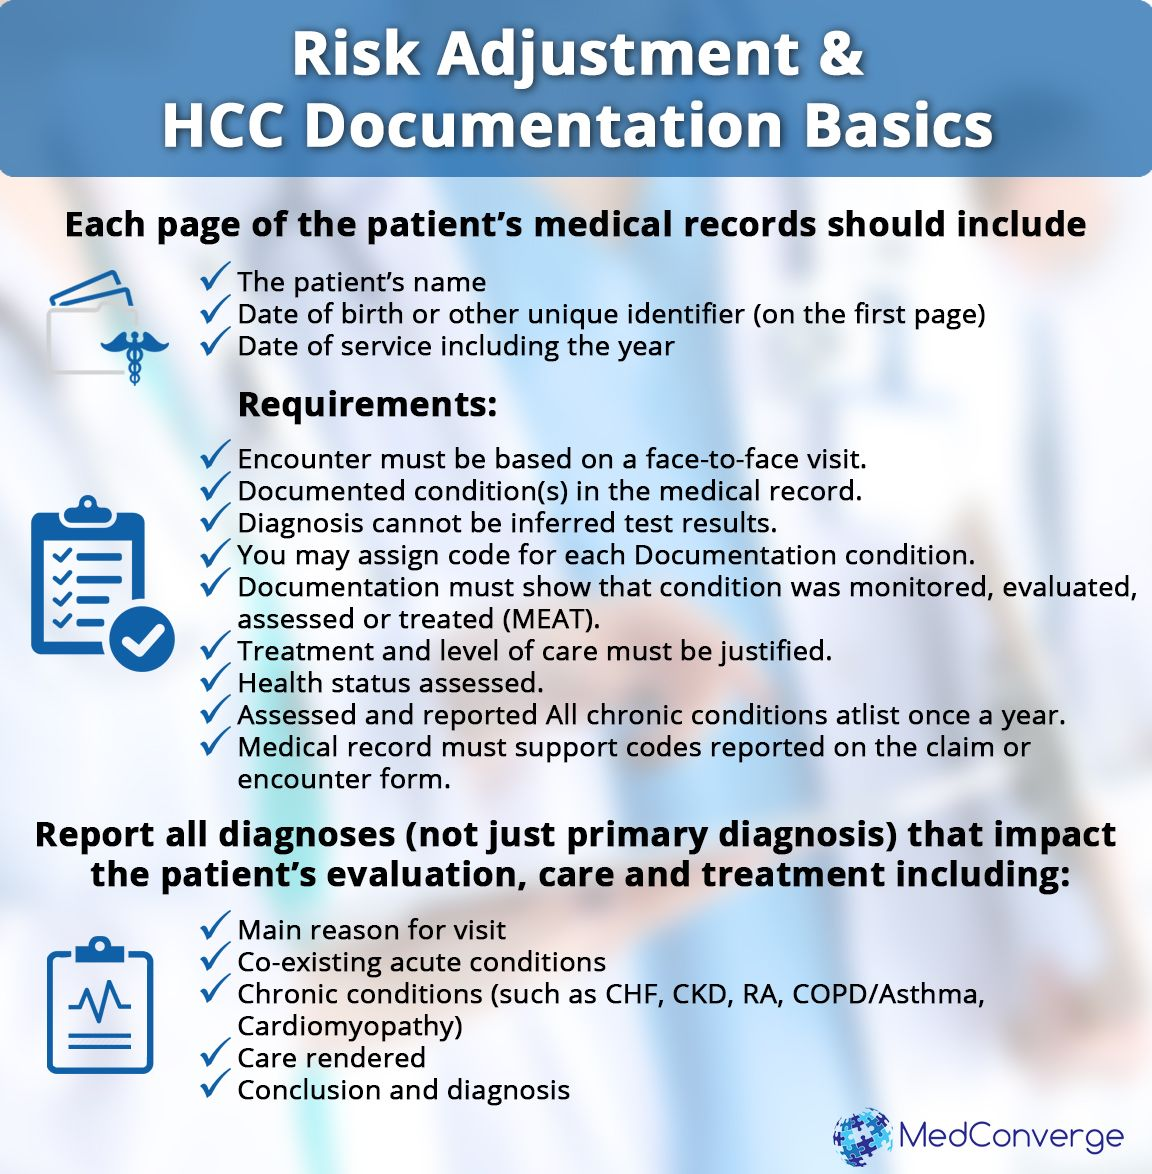 risk adjustment and hcc documentation basics